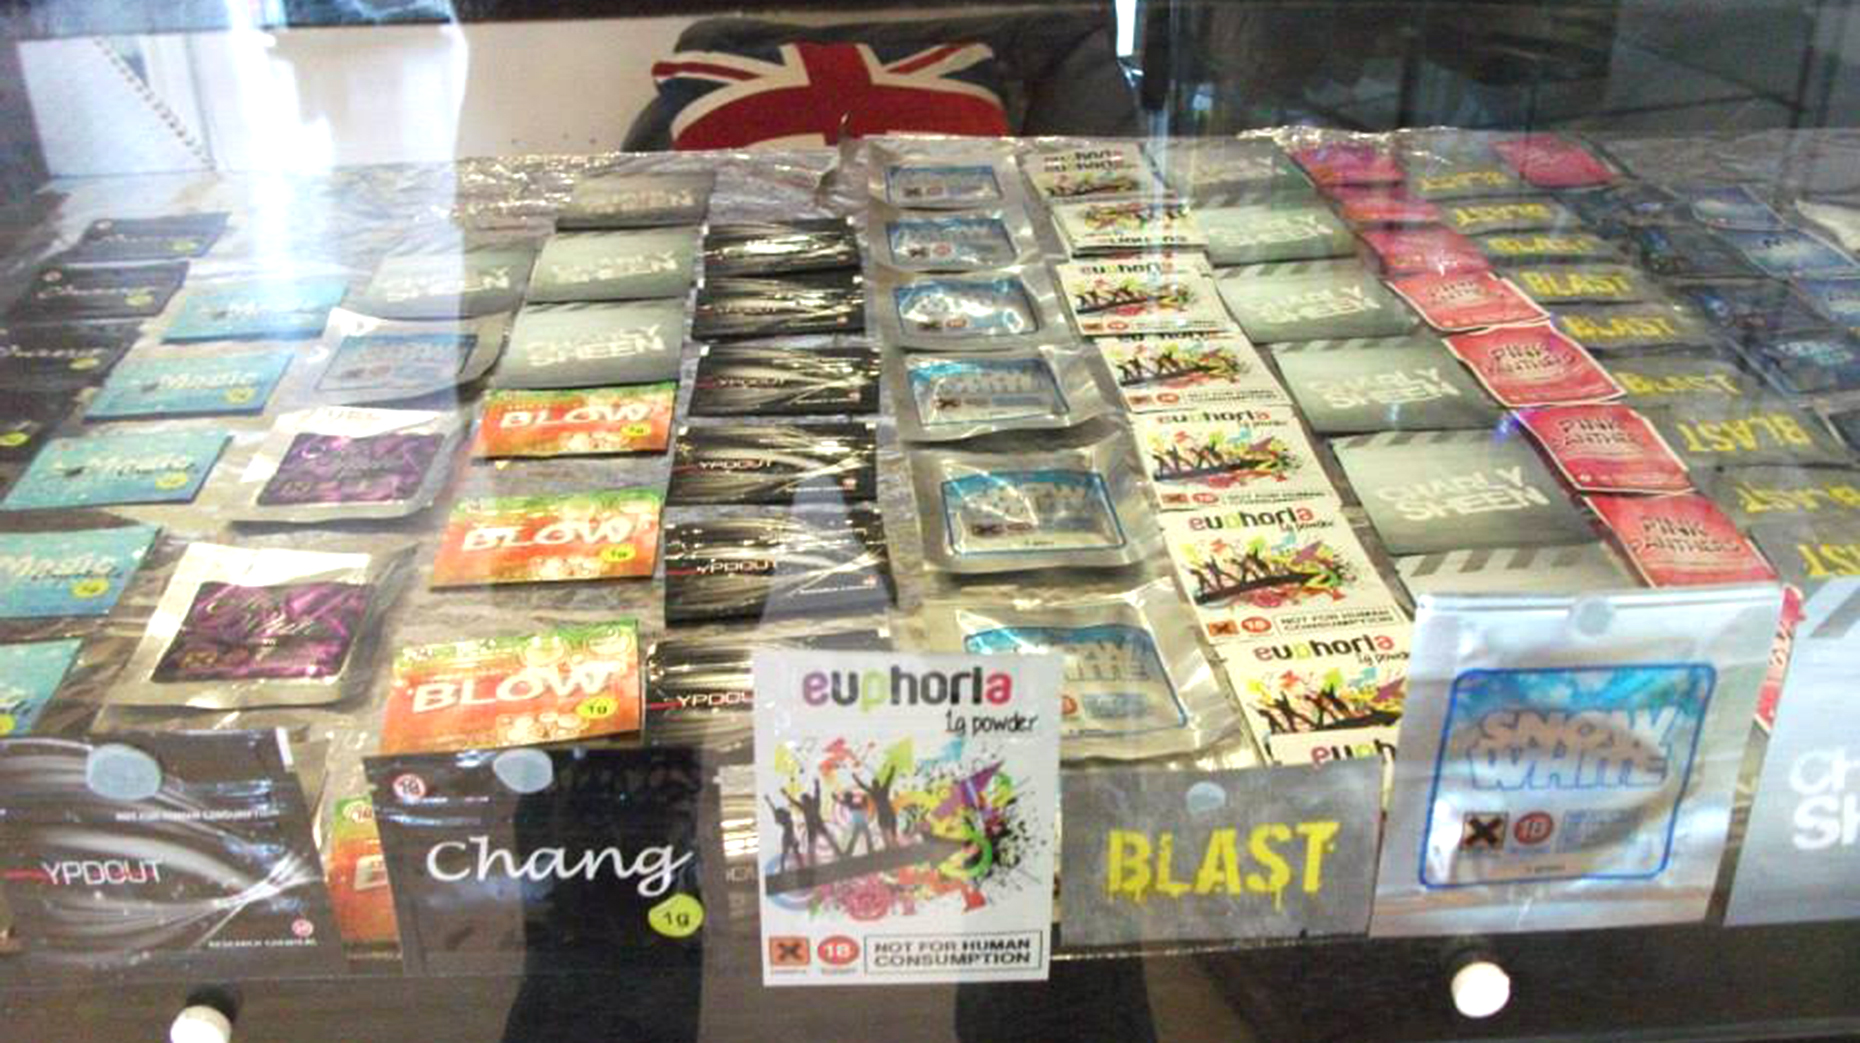 Lincoln council moves ahead with legal highs ban in city centre